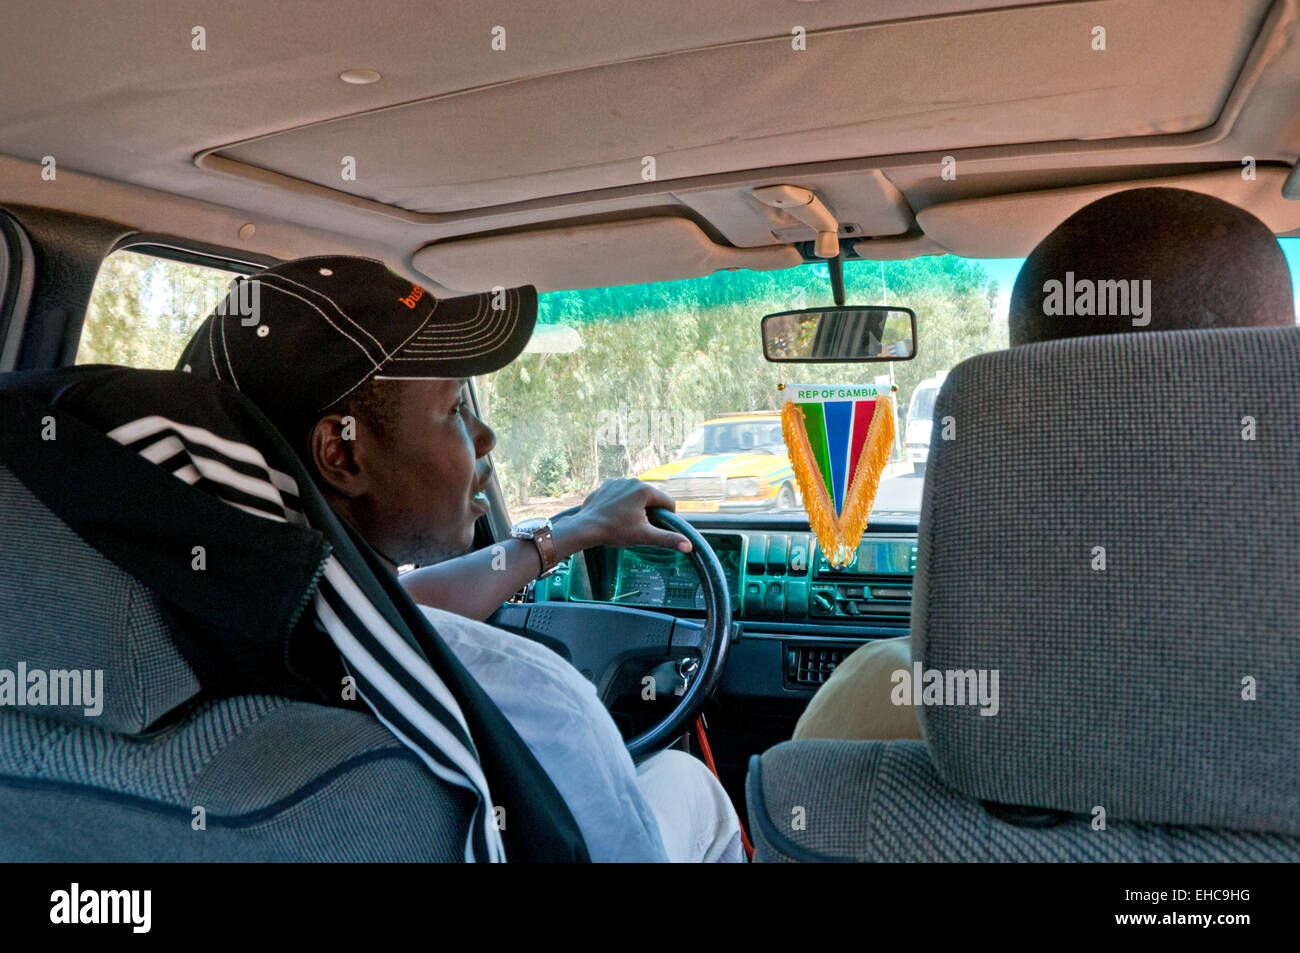 Taxi Journey in Banjul, The Gambia, West Africa - Stock Image